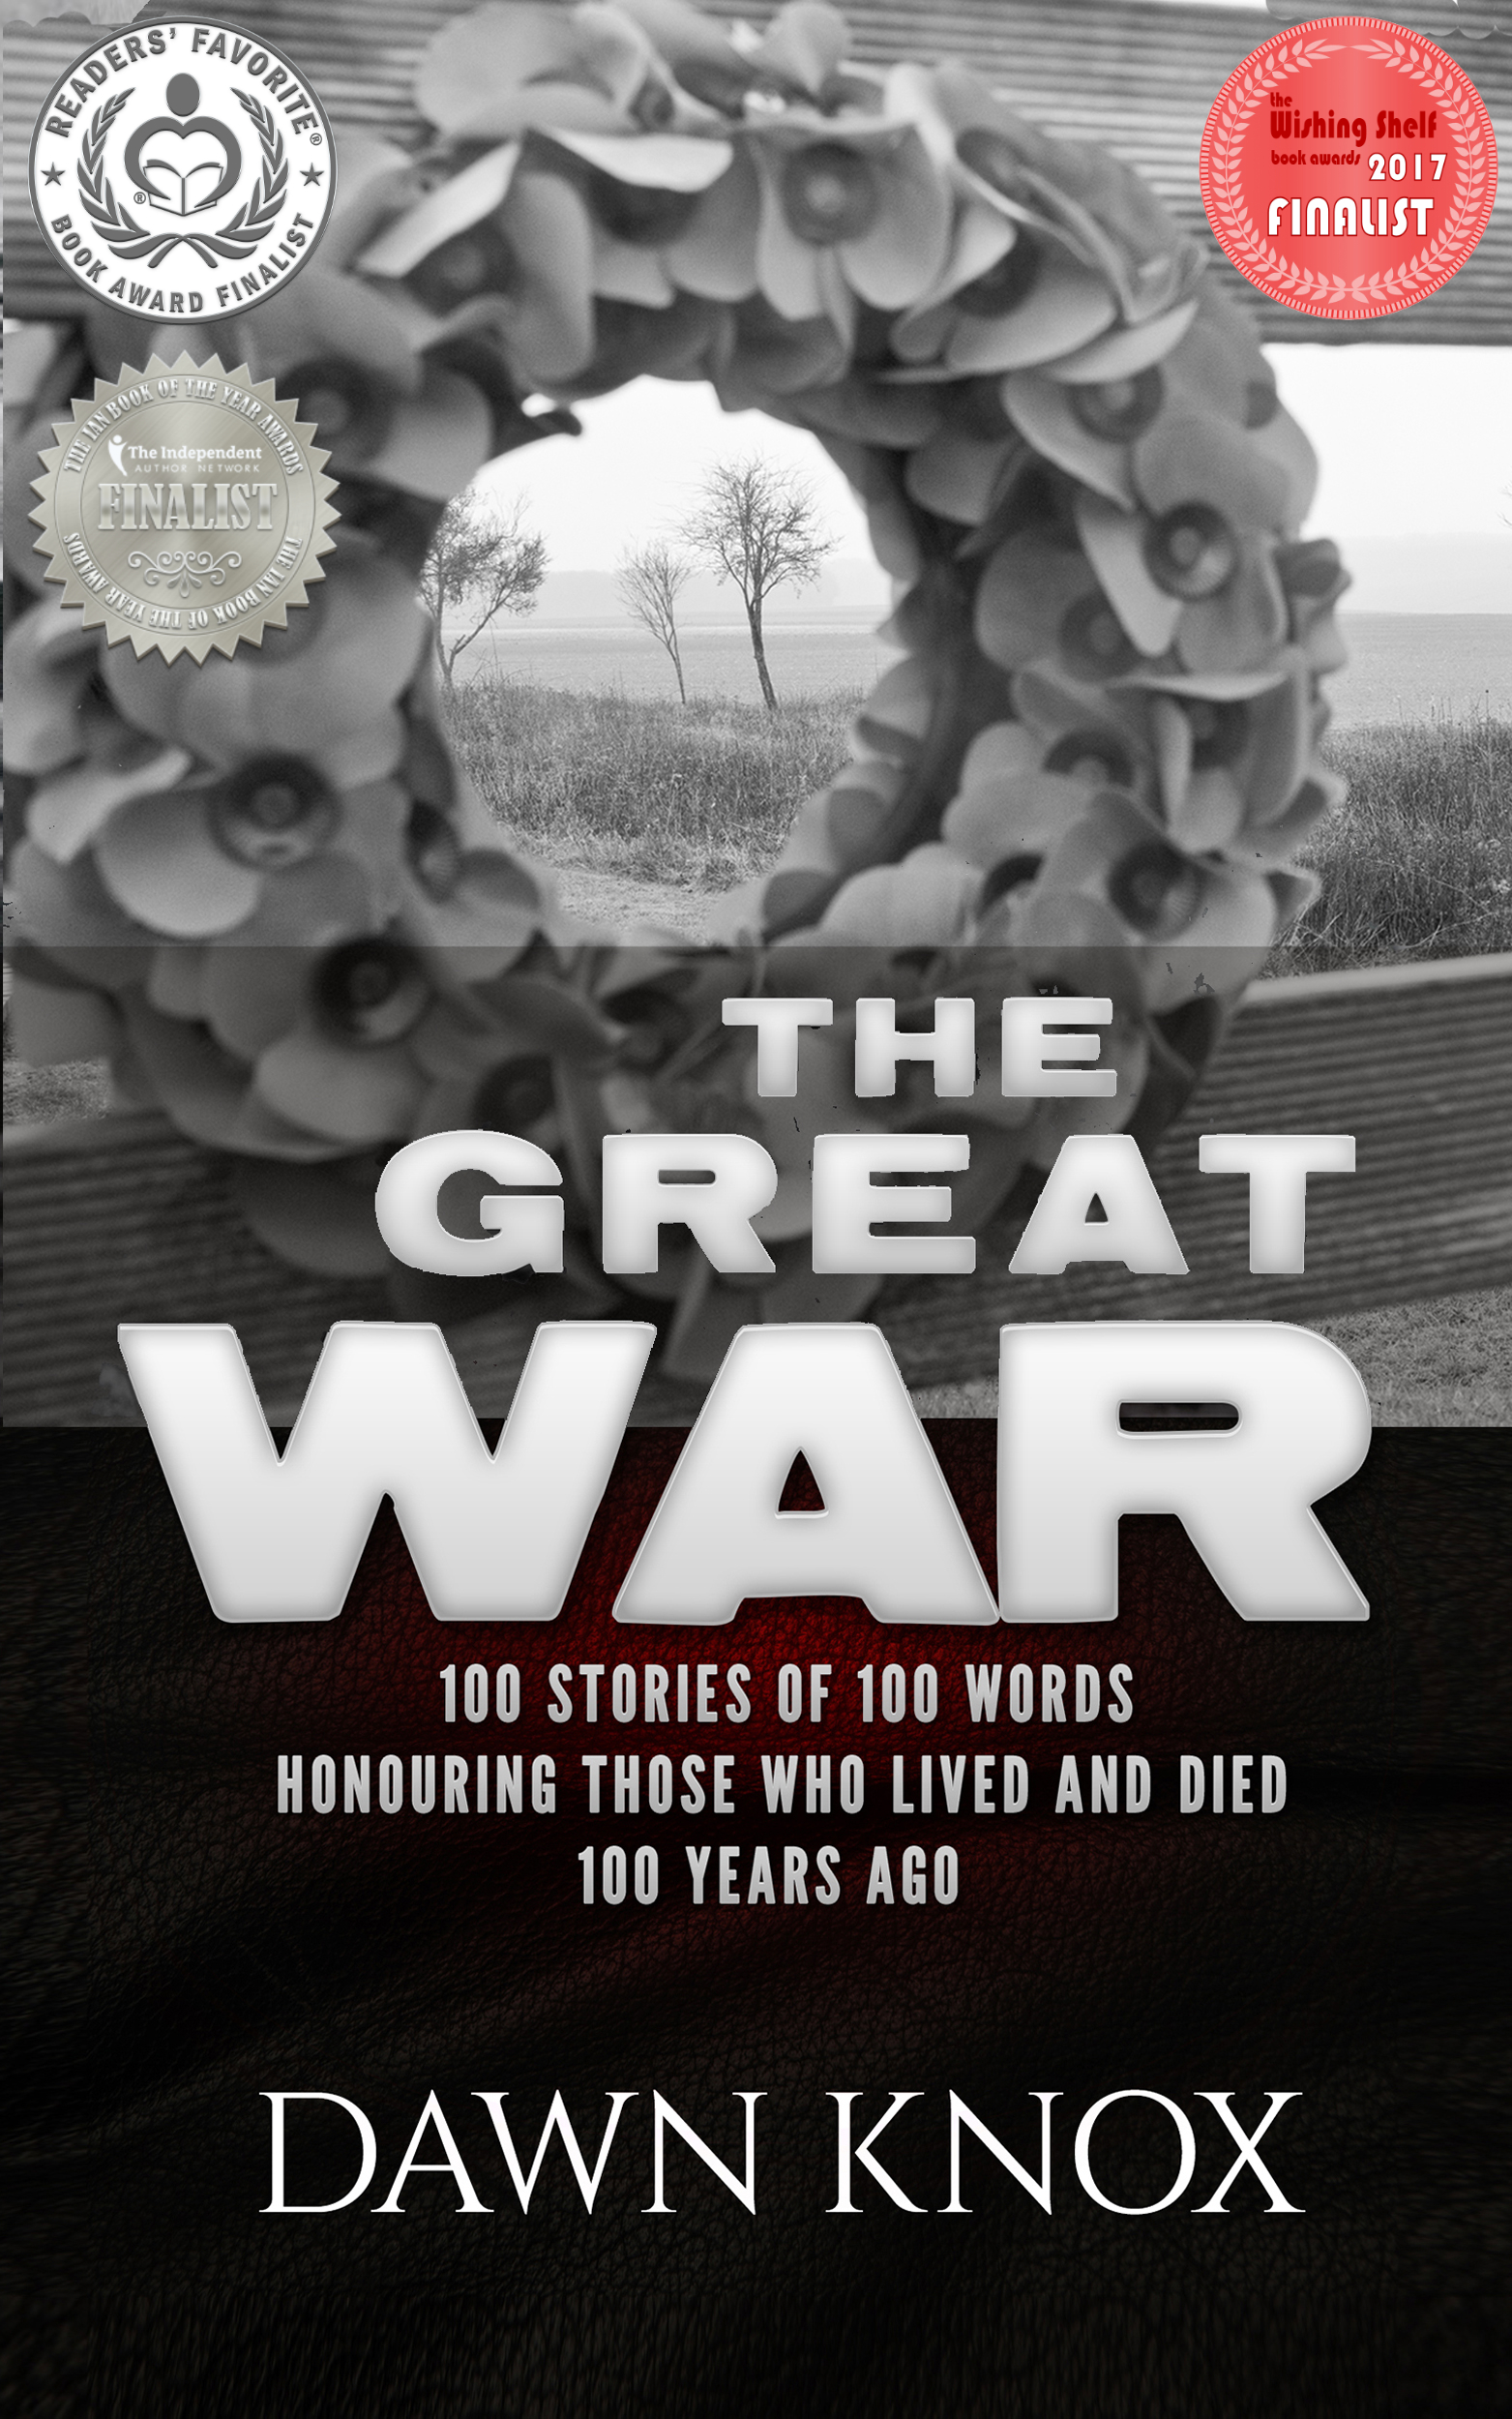 The Great War Book - Some Lovely Reviews - Knox Box of